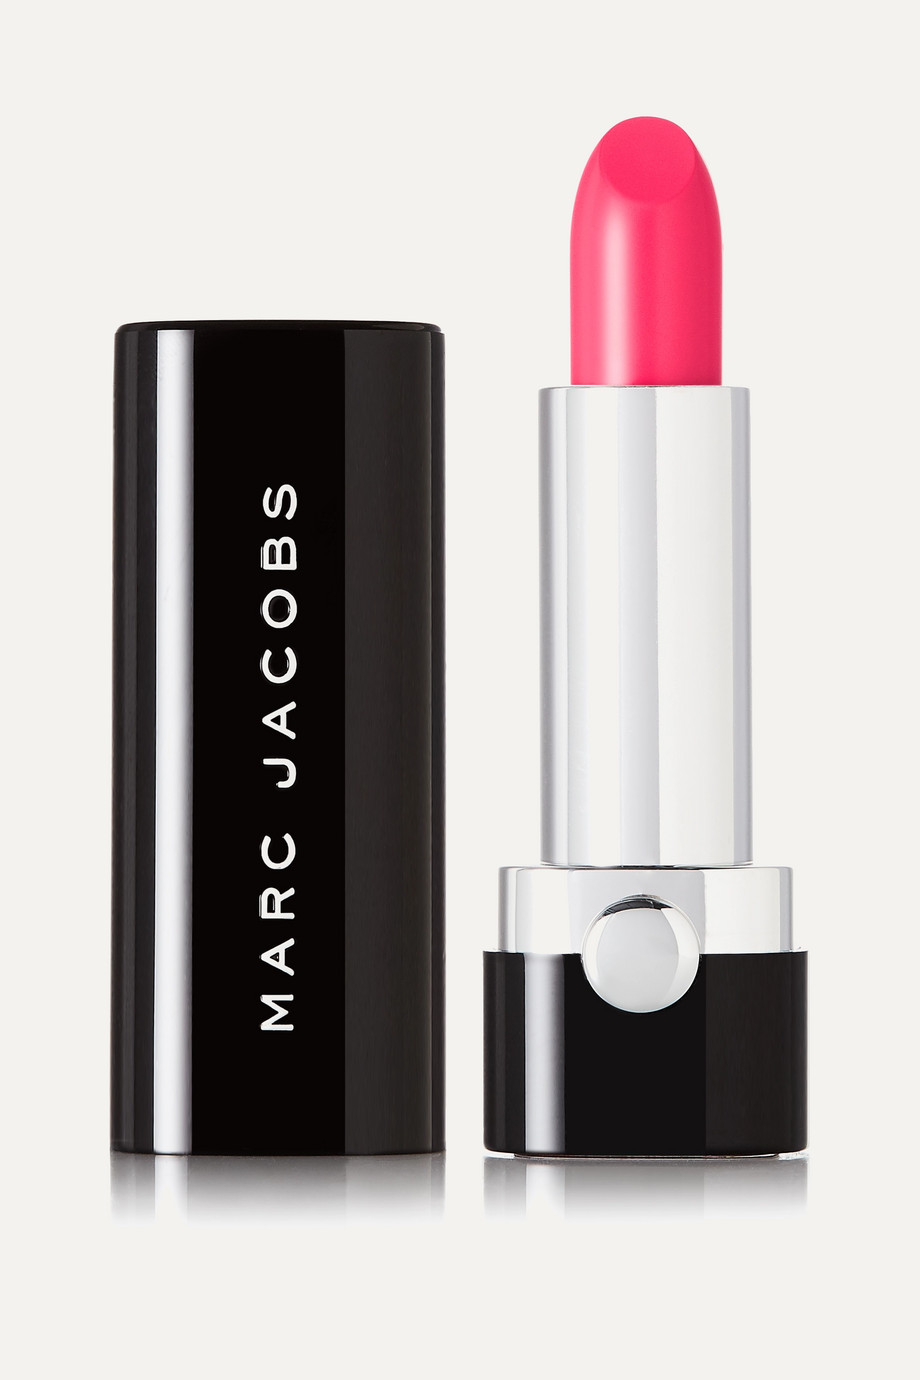 Marc Jacobs Beauty Le Marc Lip Crème - So Sofia 236